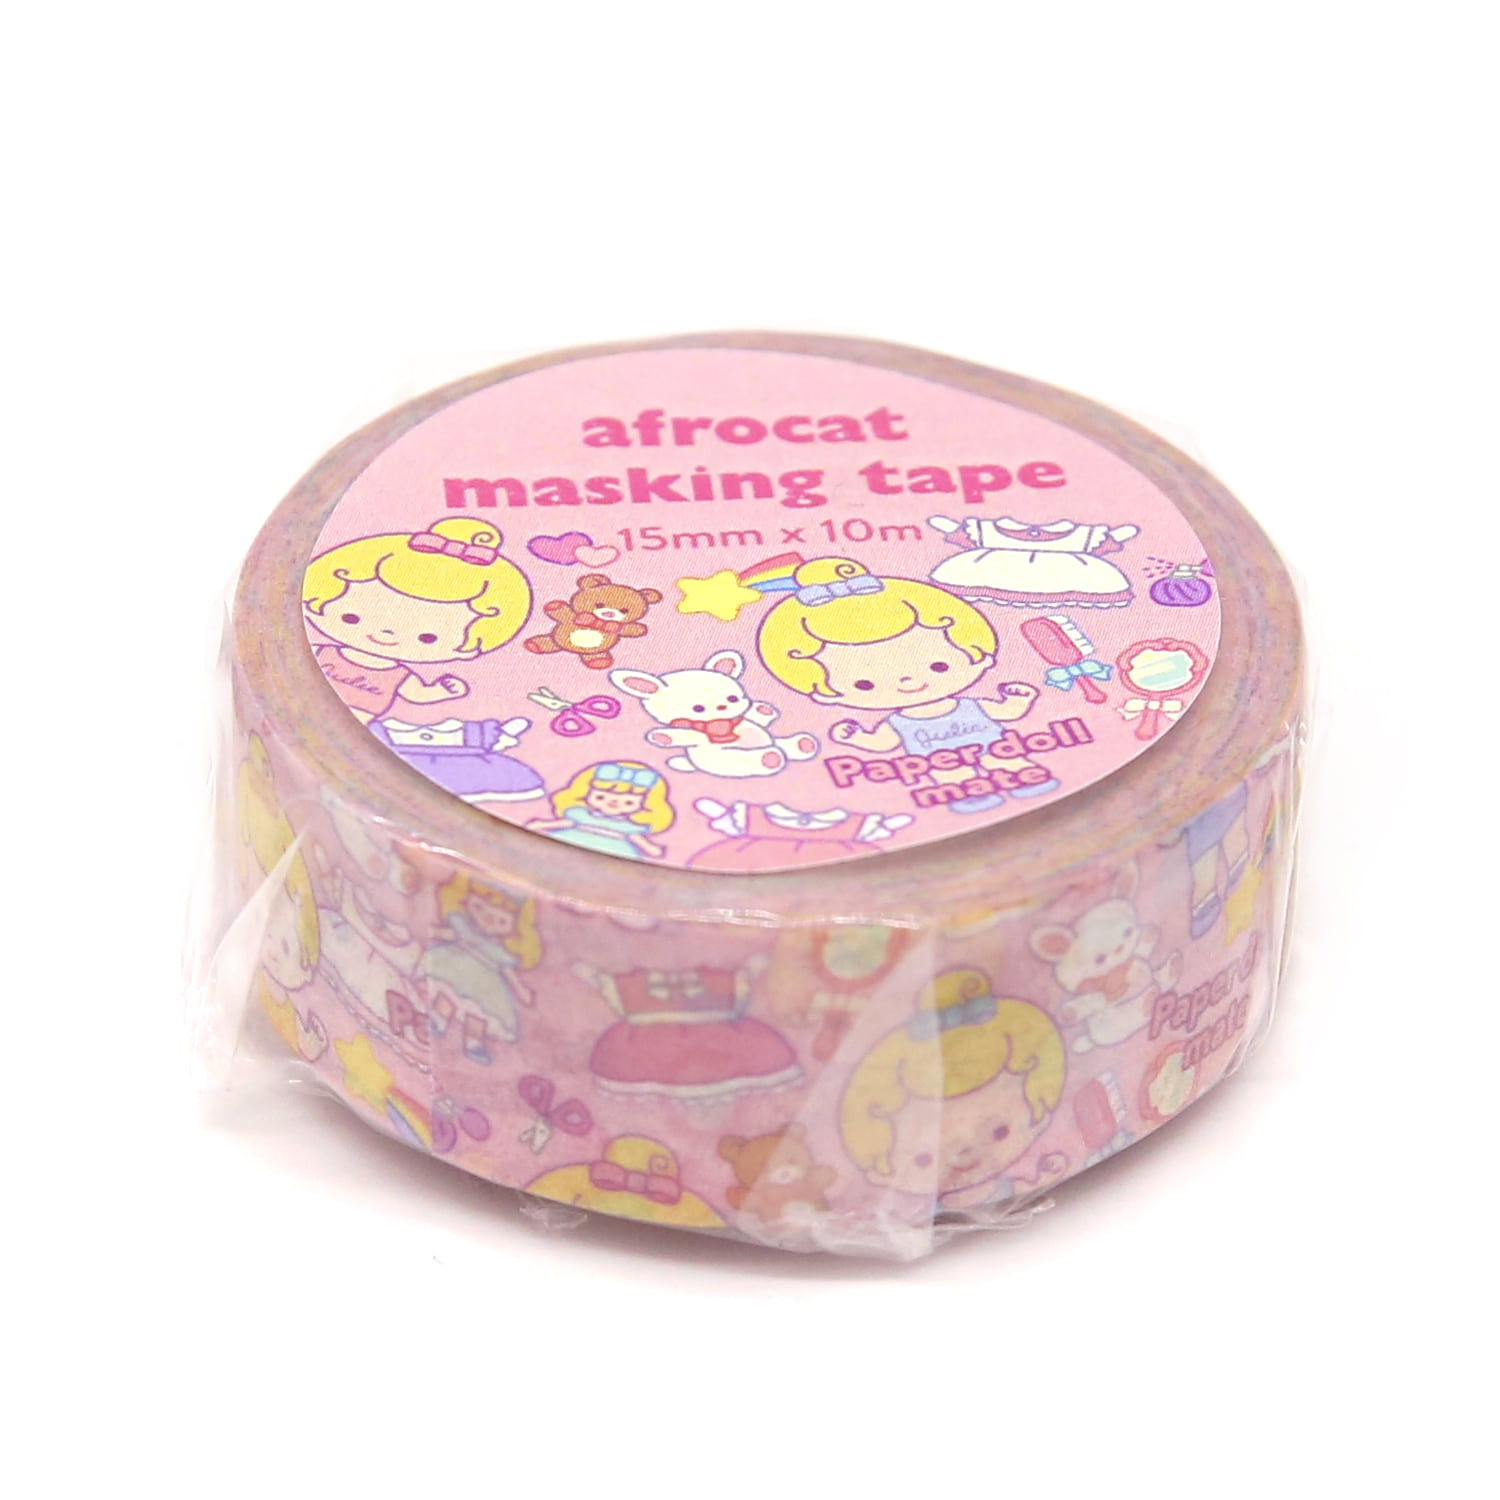 [afrocat masking tape] 17. Paper doll mate_minime  julie 15mm